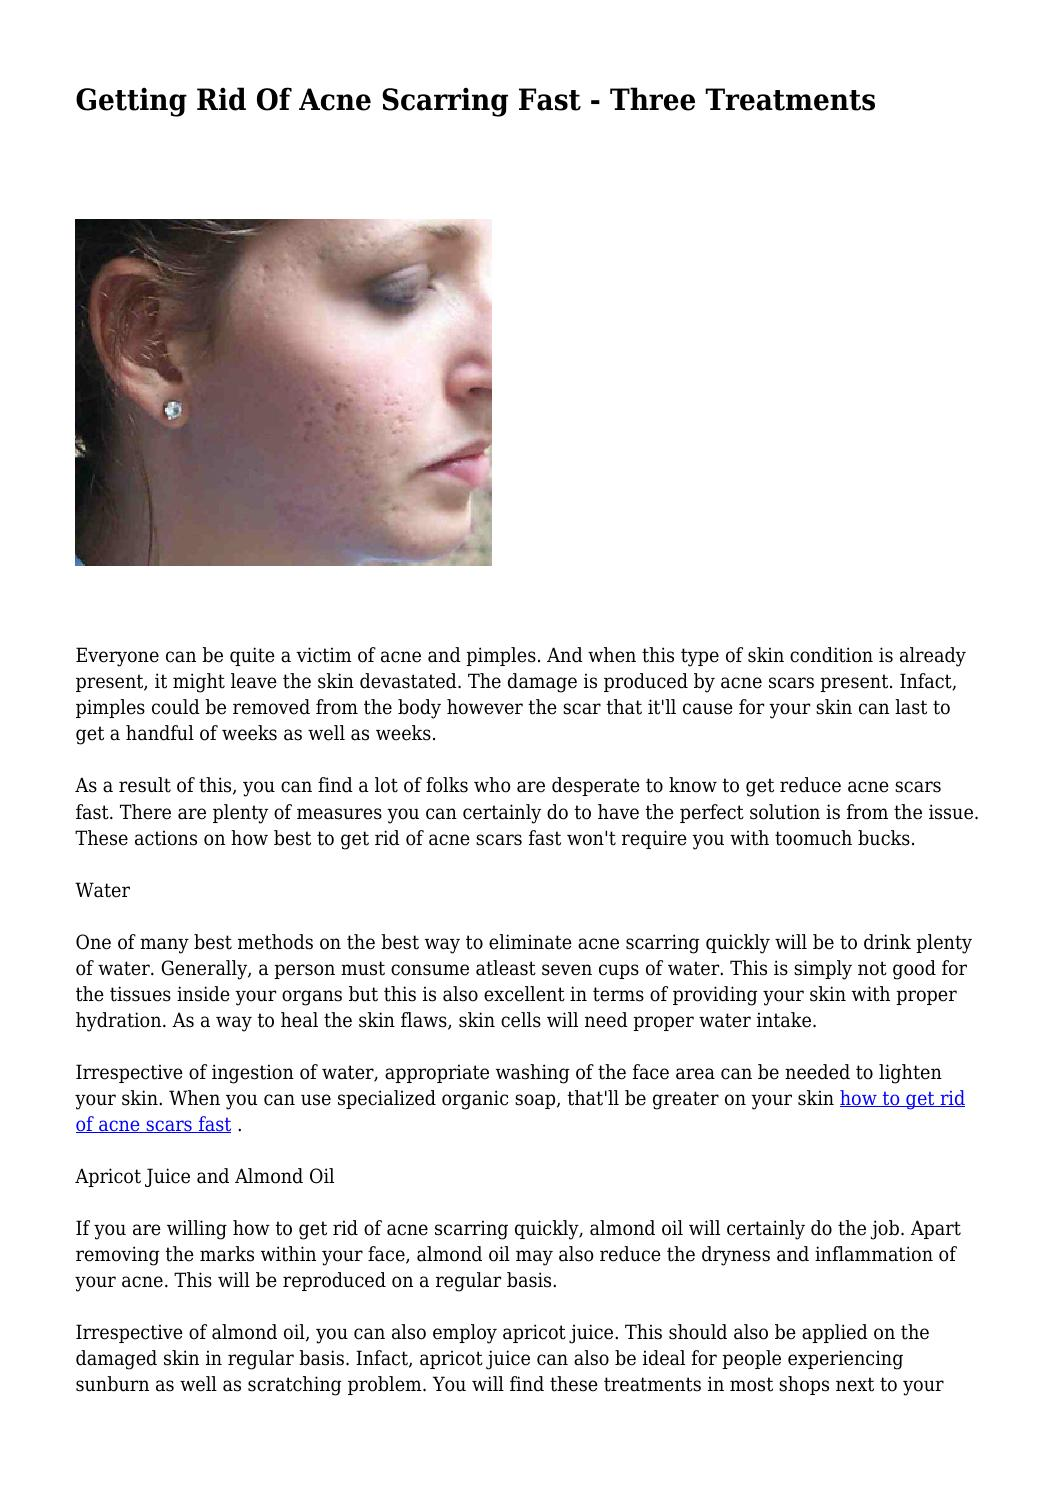 Getting Rid Of Acne Scarring Fast - Three Treatments by